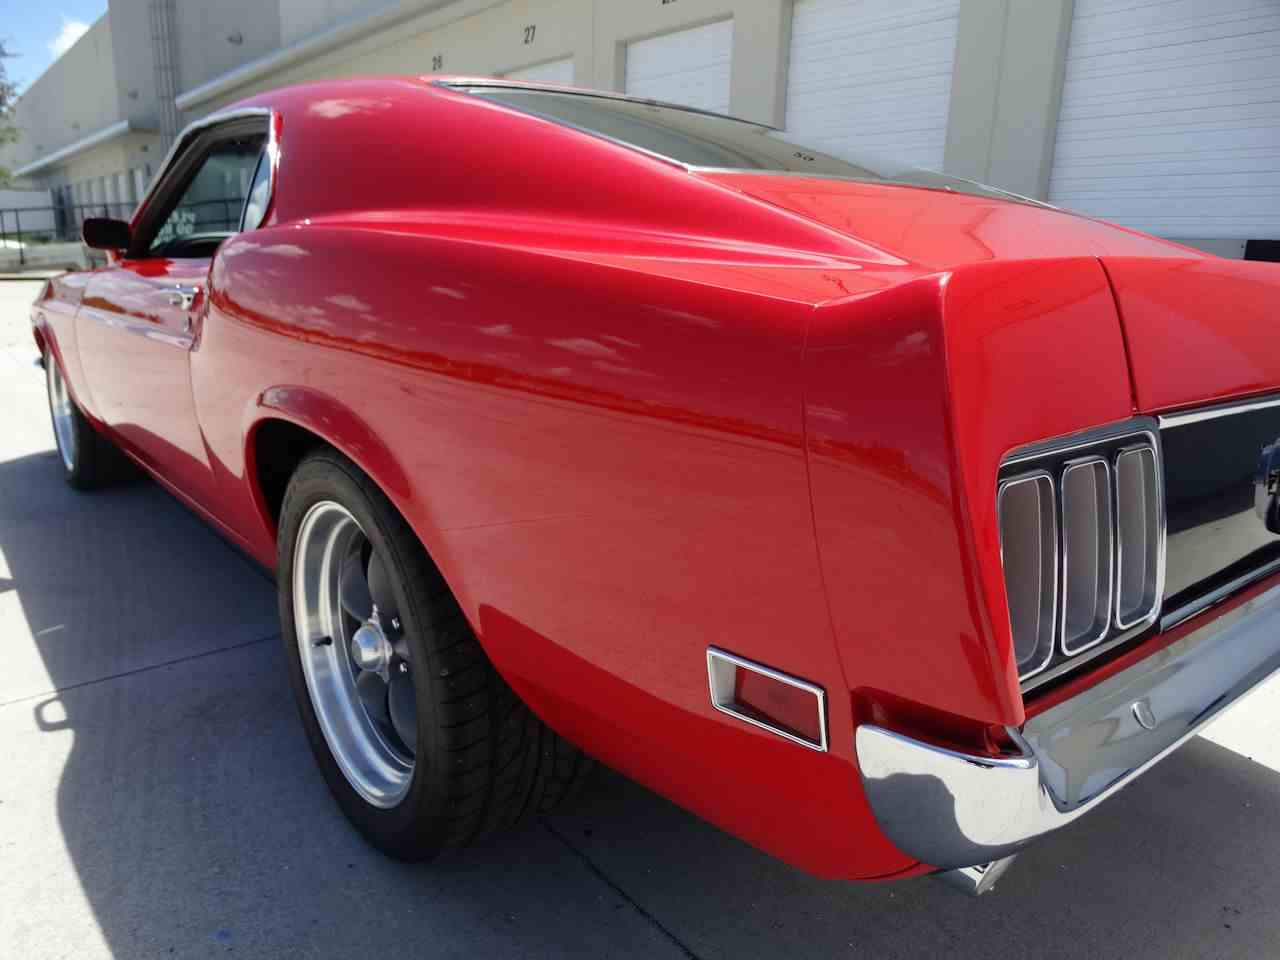 Large Picture of Classic '70 Mustang located in Coral Springs Florida - $60,000.00 Offered by Gateway Classic Cars - Fort Lauderdale - LG4A